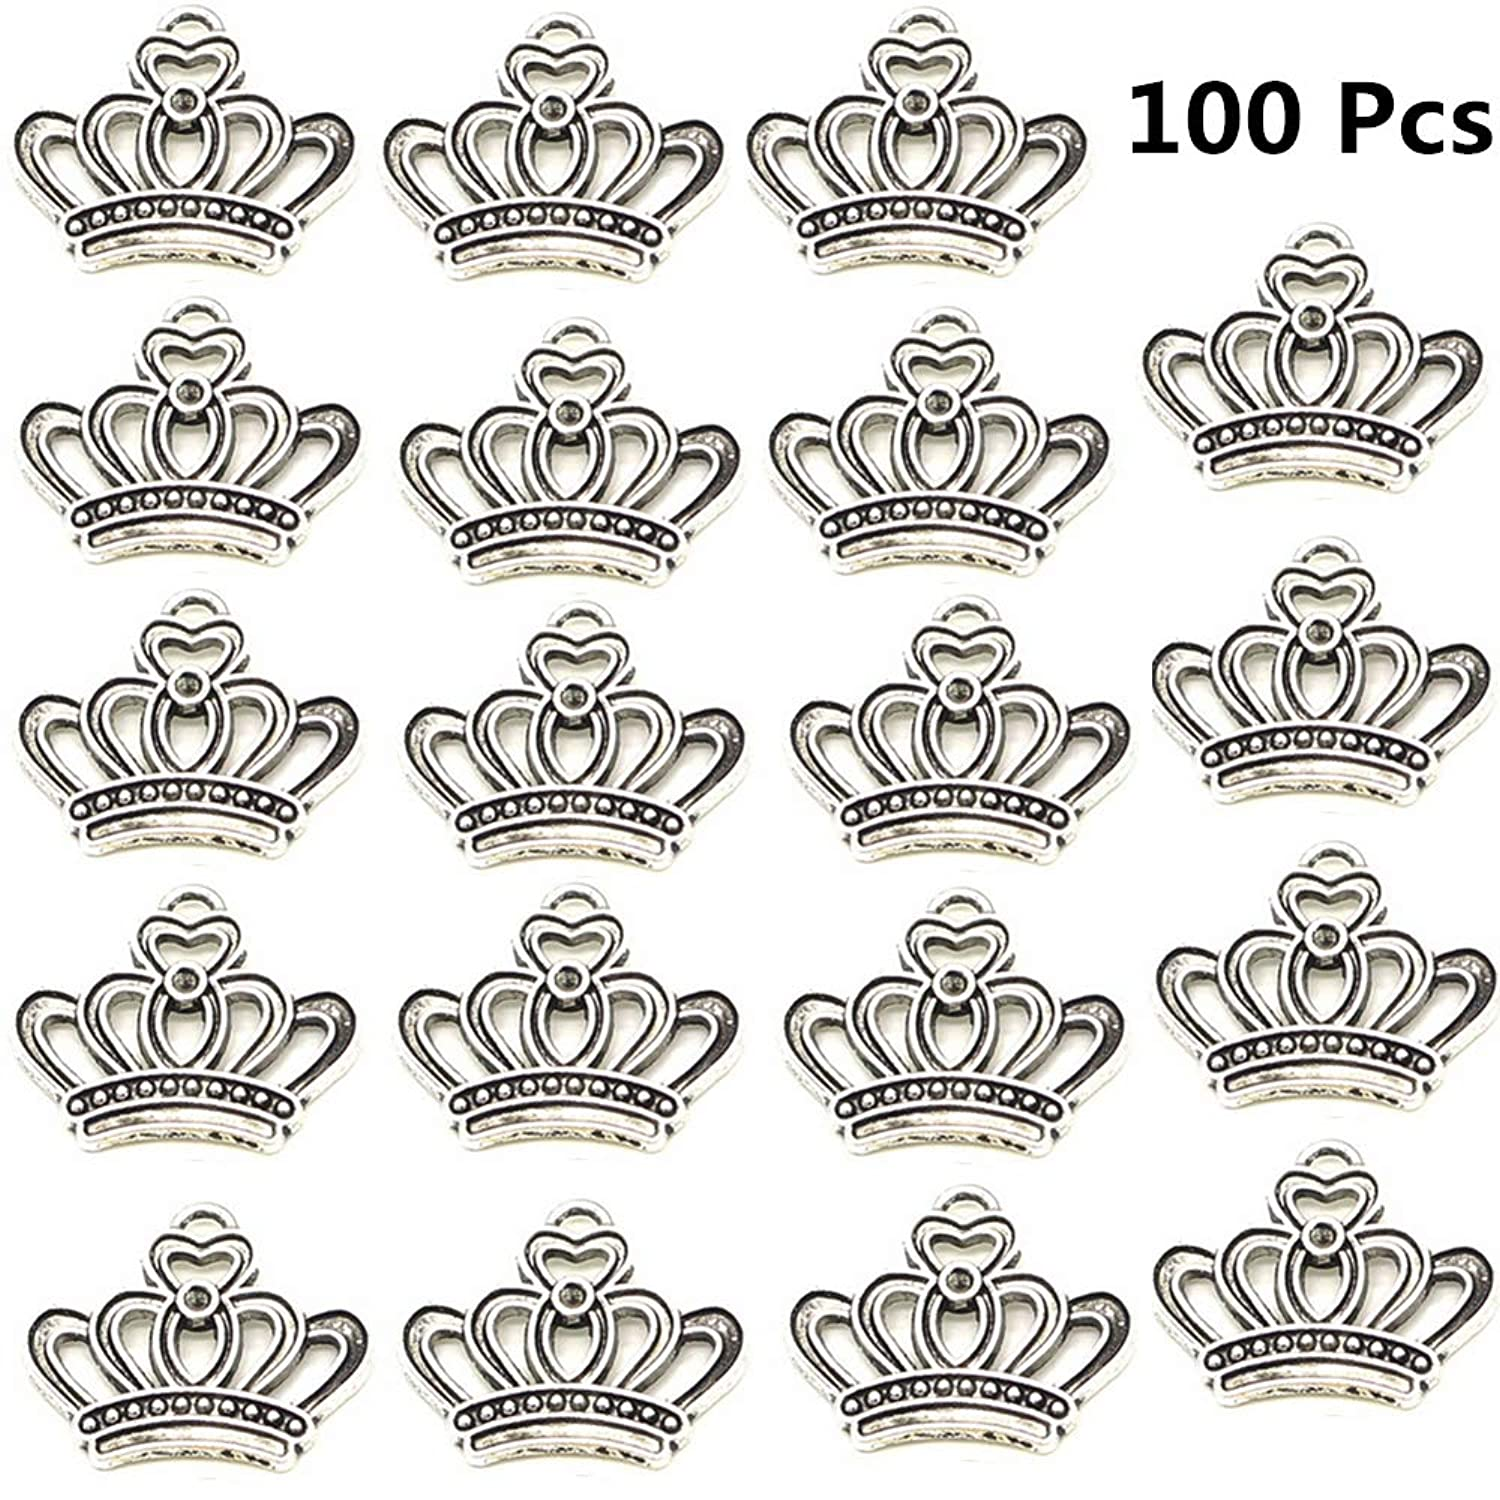 Xinhongo 100pcs Vintage Antique Silver Alloy Crown Shape Charms Pendant Connector Jewelry Findings for Jewelry Making and Crafting Necklace Bracelet Pendant DIY Accessaries,23x18mm (Silver Crown) aqrrpj7508685